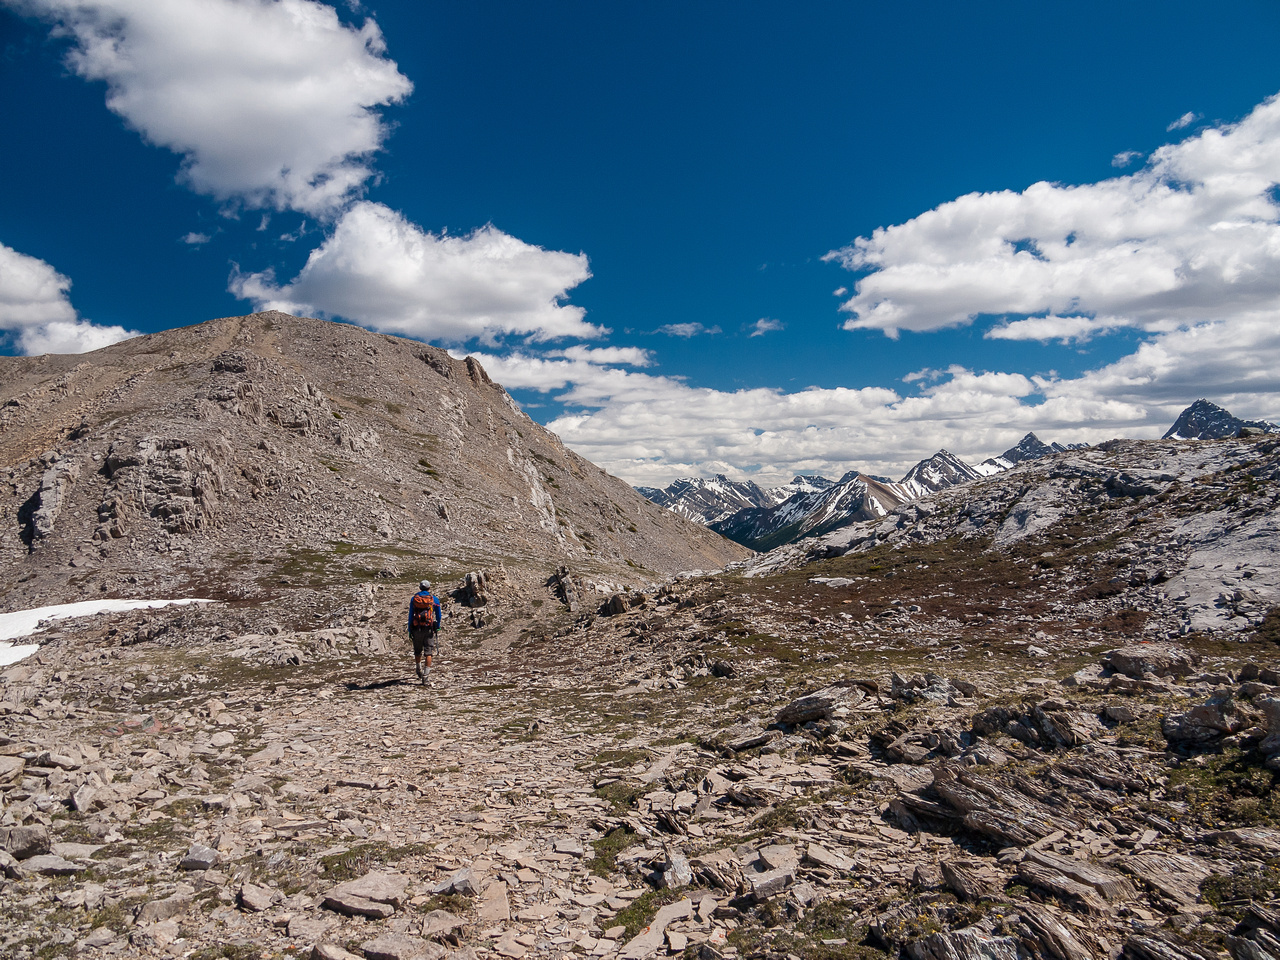 More awesome scenery on the summit ridge.